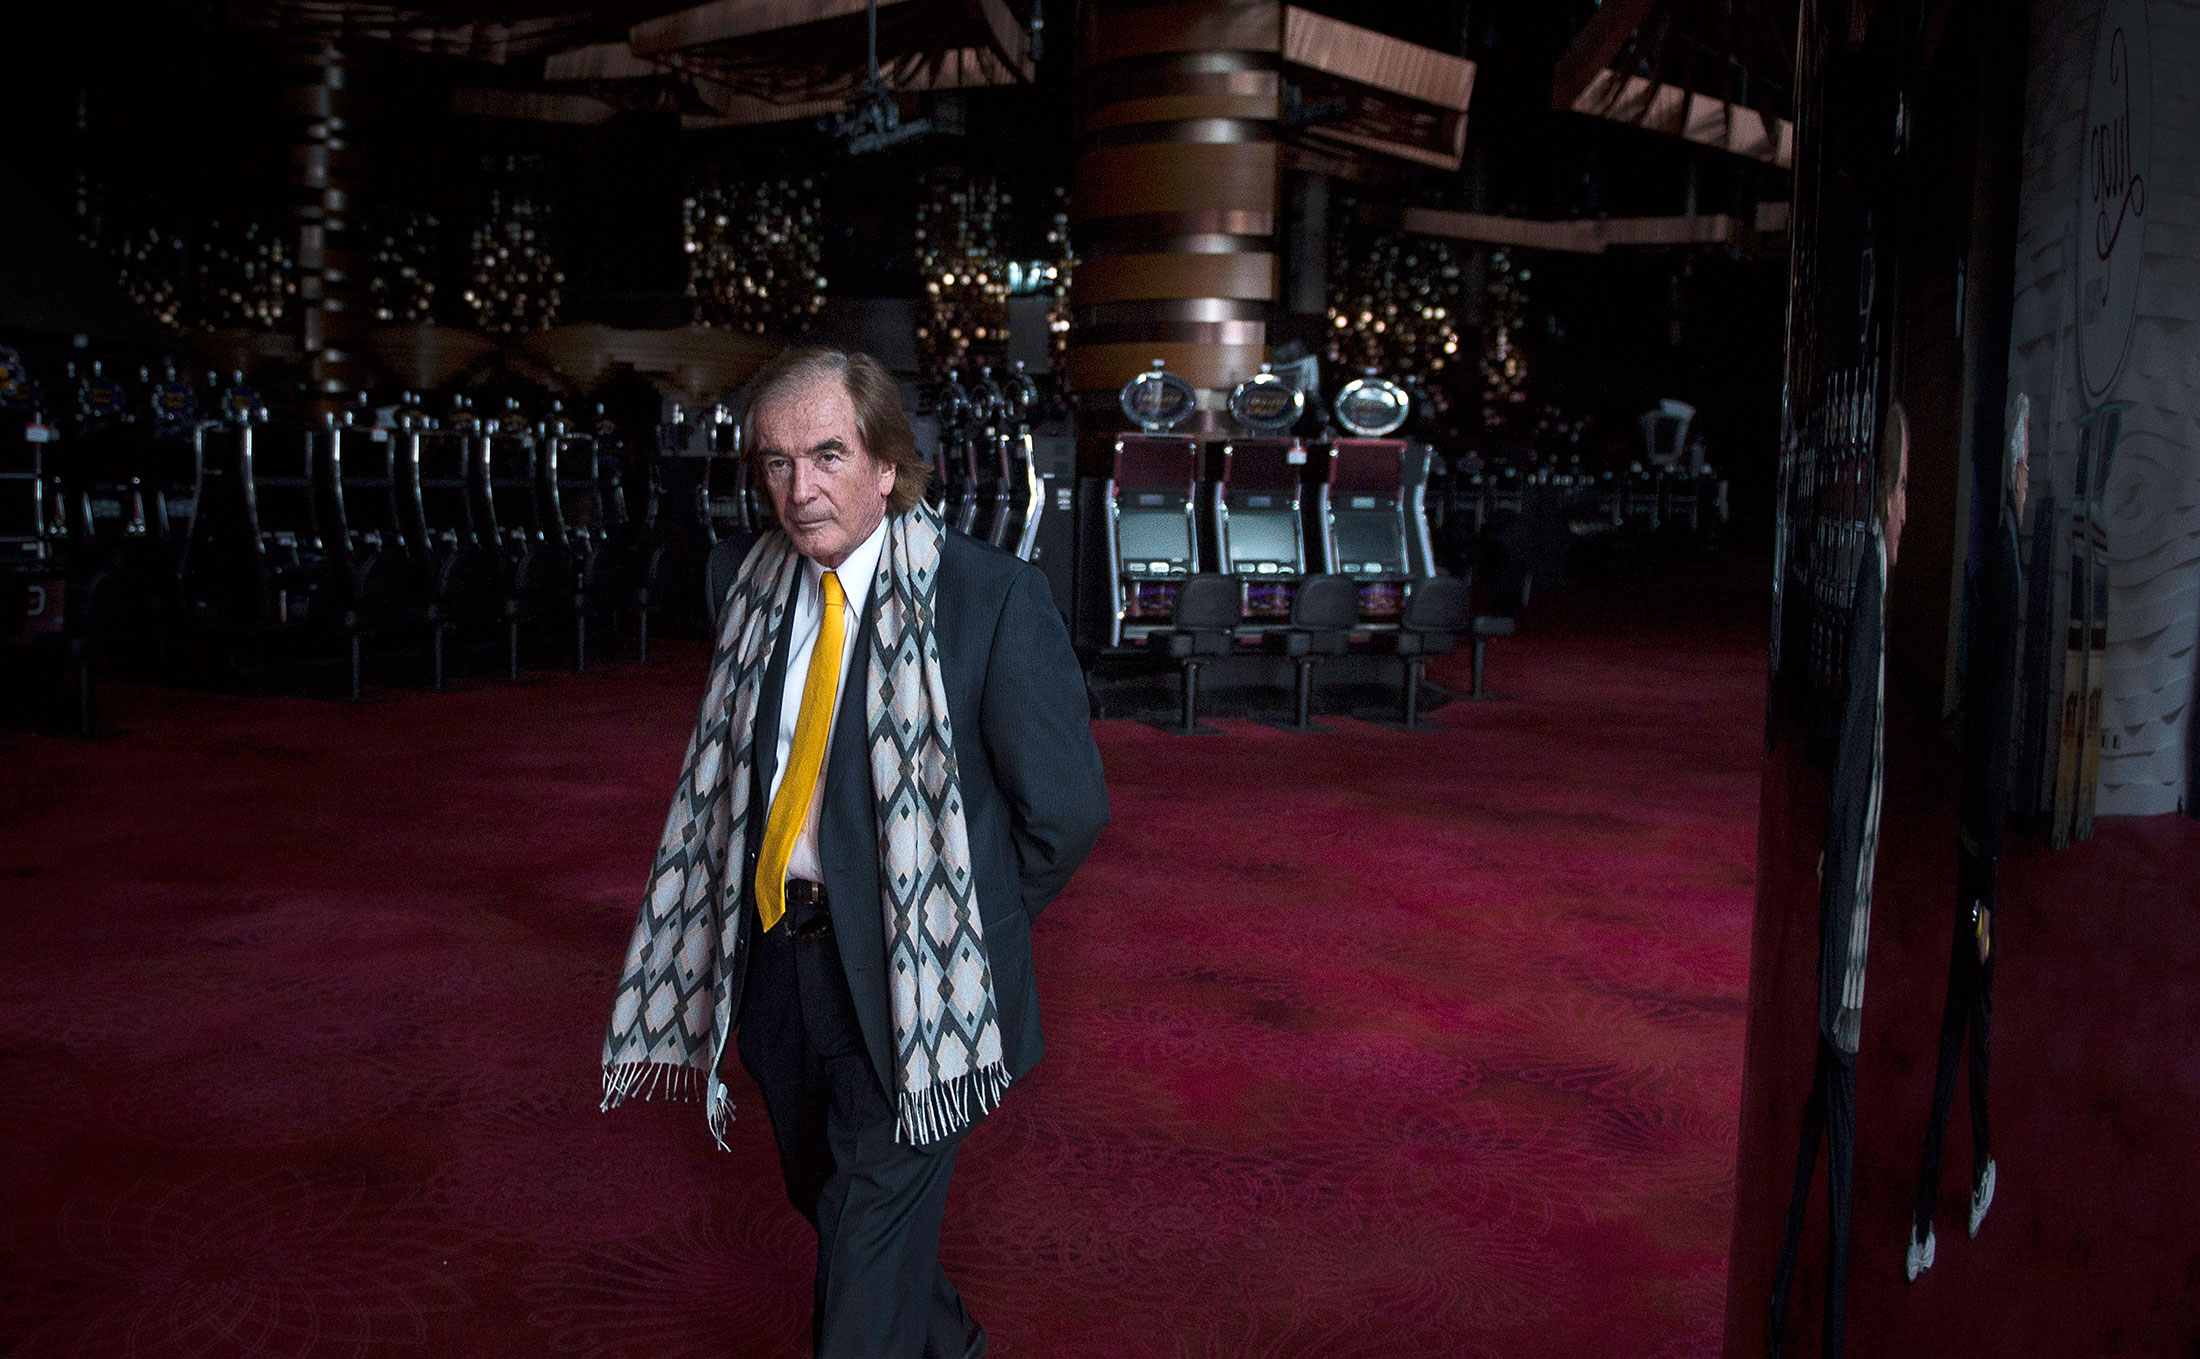 Glenn Straub onthe darkened and depopulated casino floor insidethe Revel Atlantic City, which he purchased out ofbankruptcy last month for$82 million.